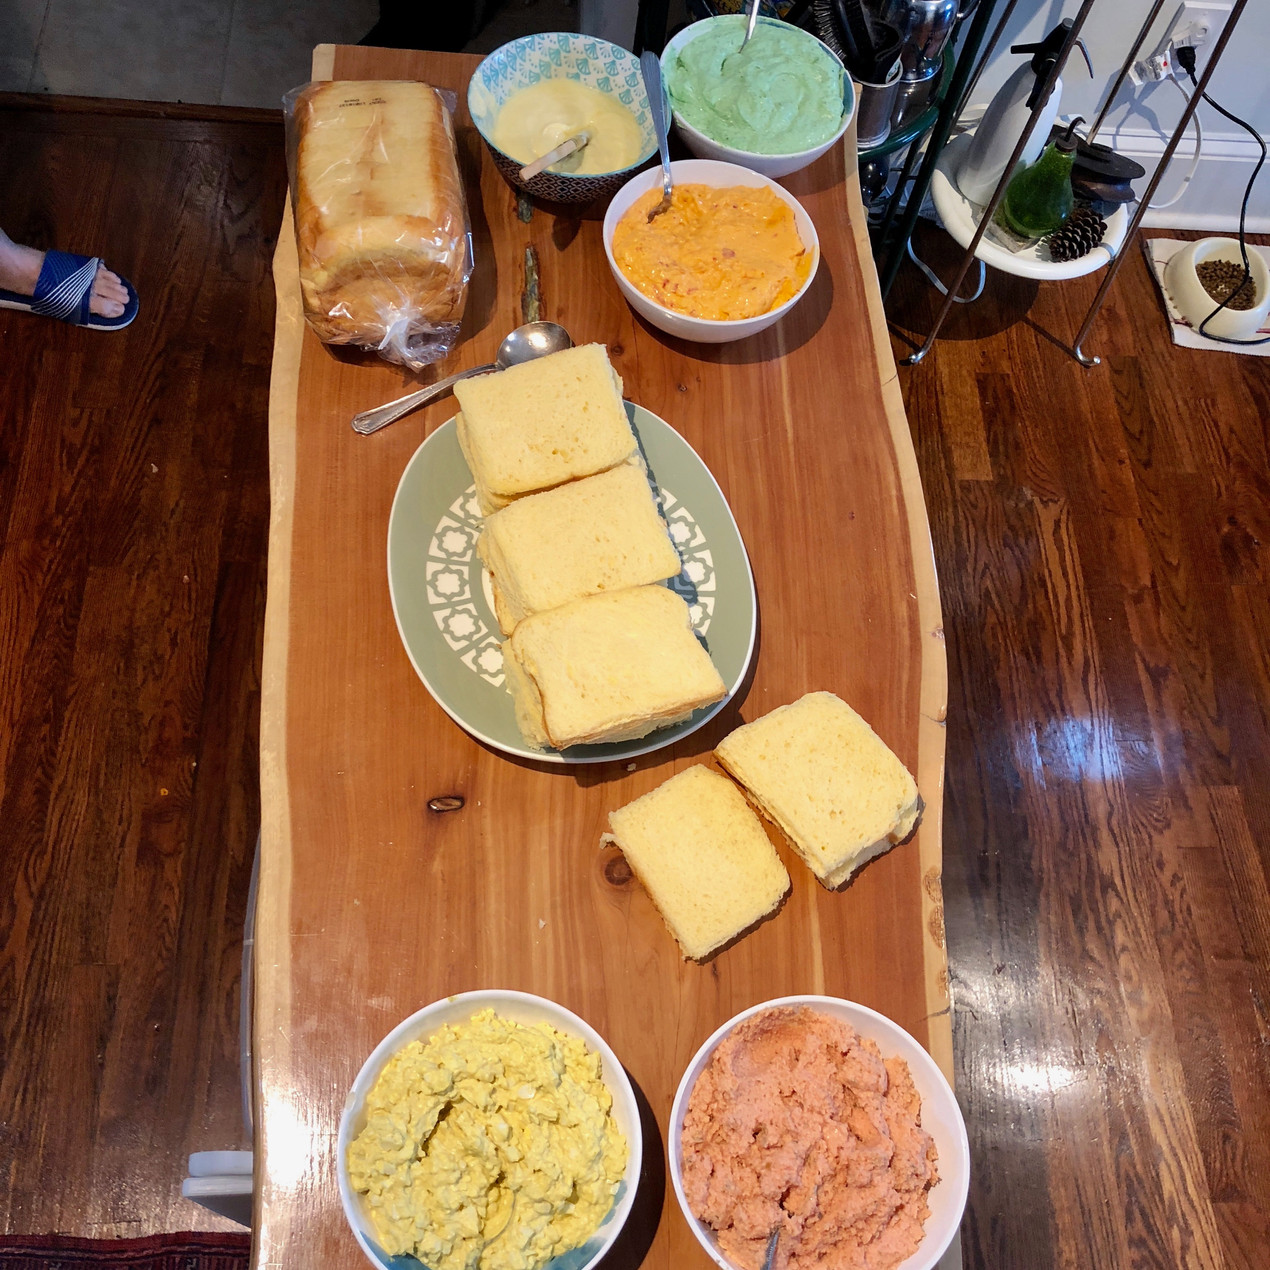 All the ingredients for the cream cheese loaf on the table